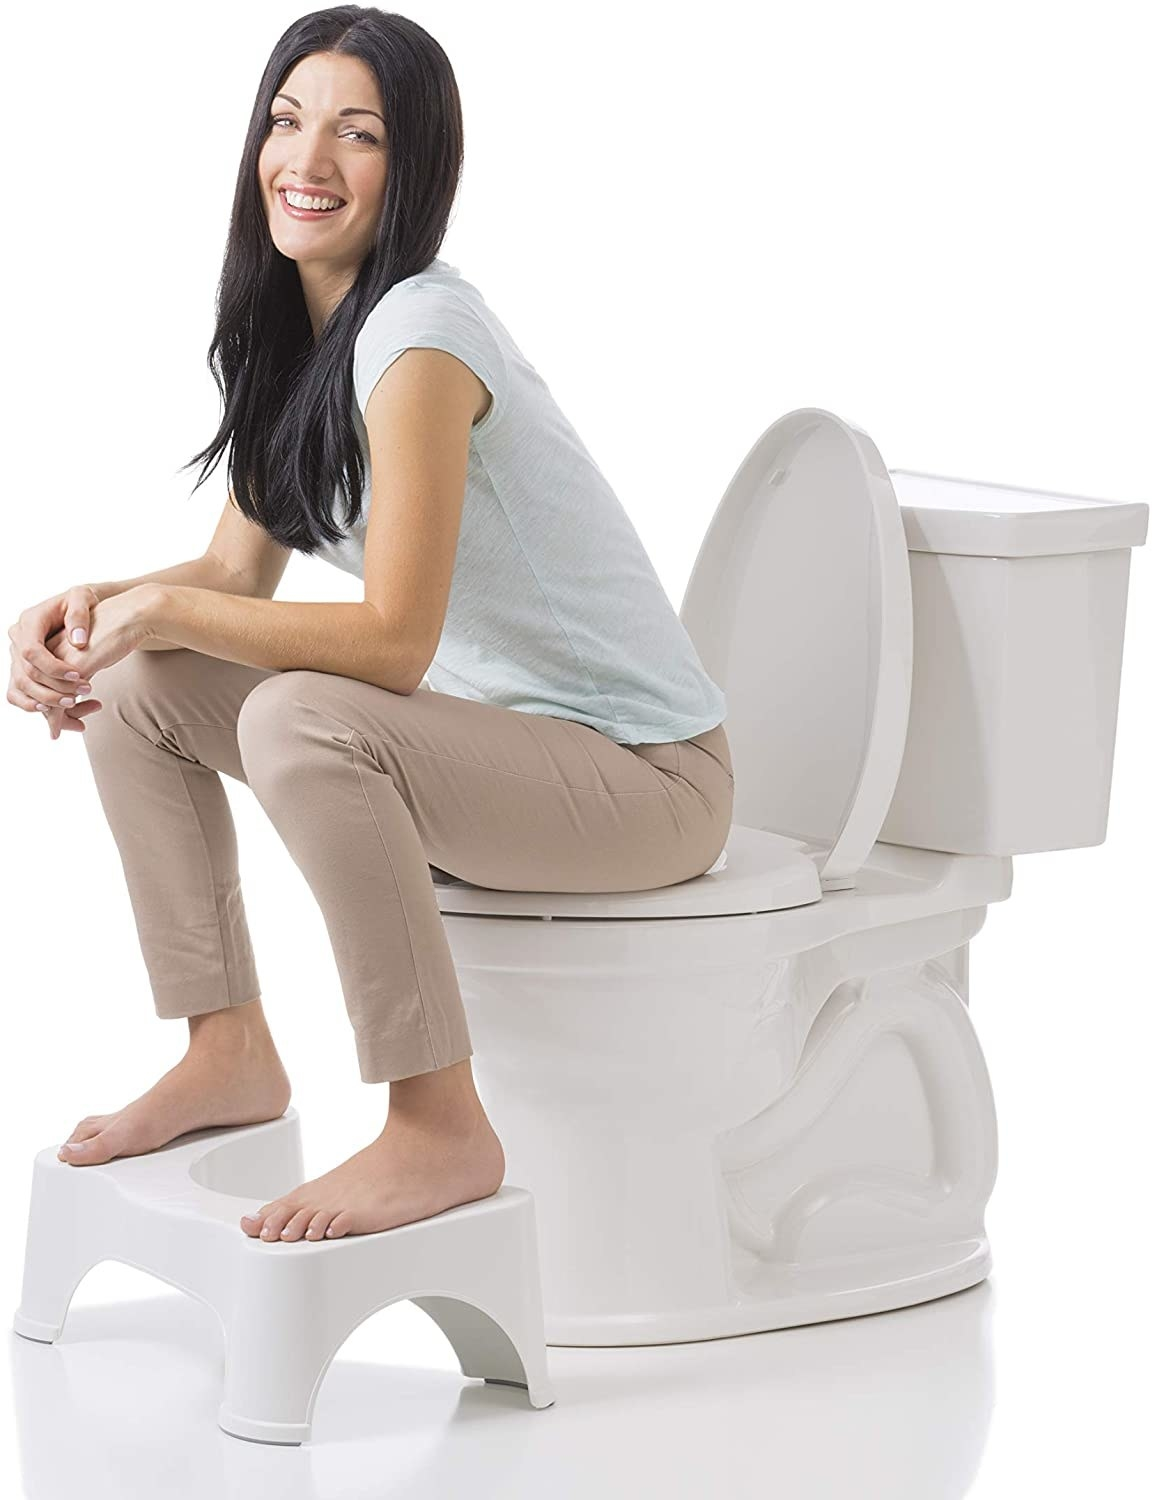 A model sitting on the toilet with their feet propped up on the white stool underneath it